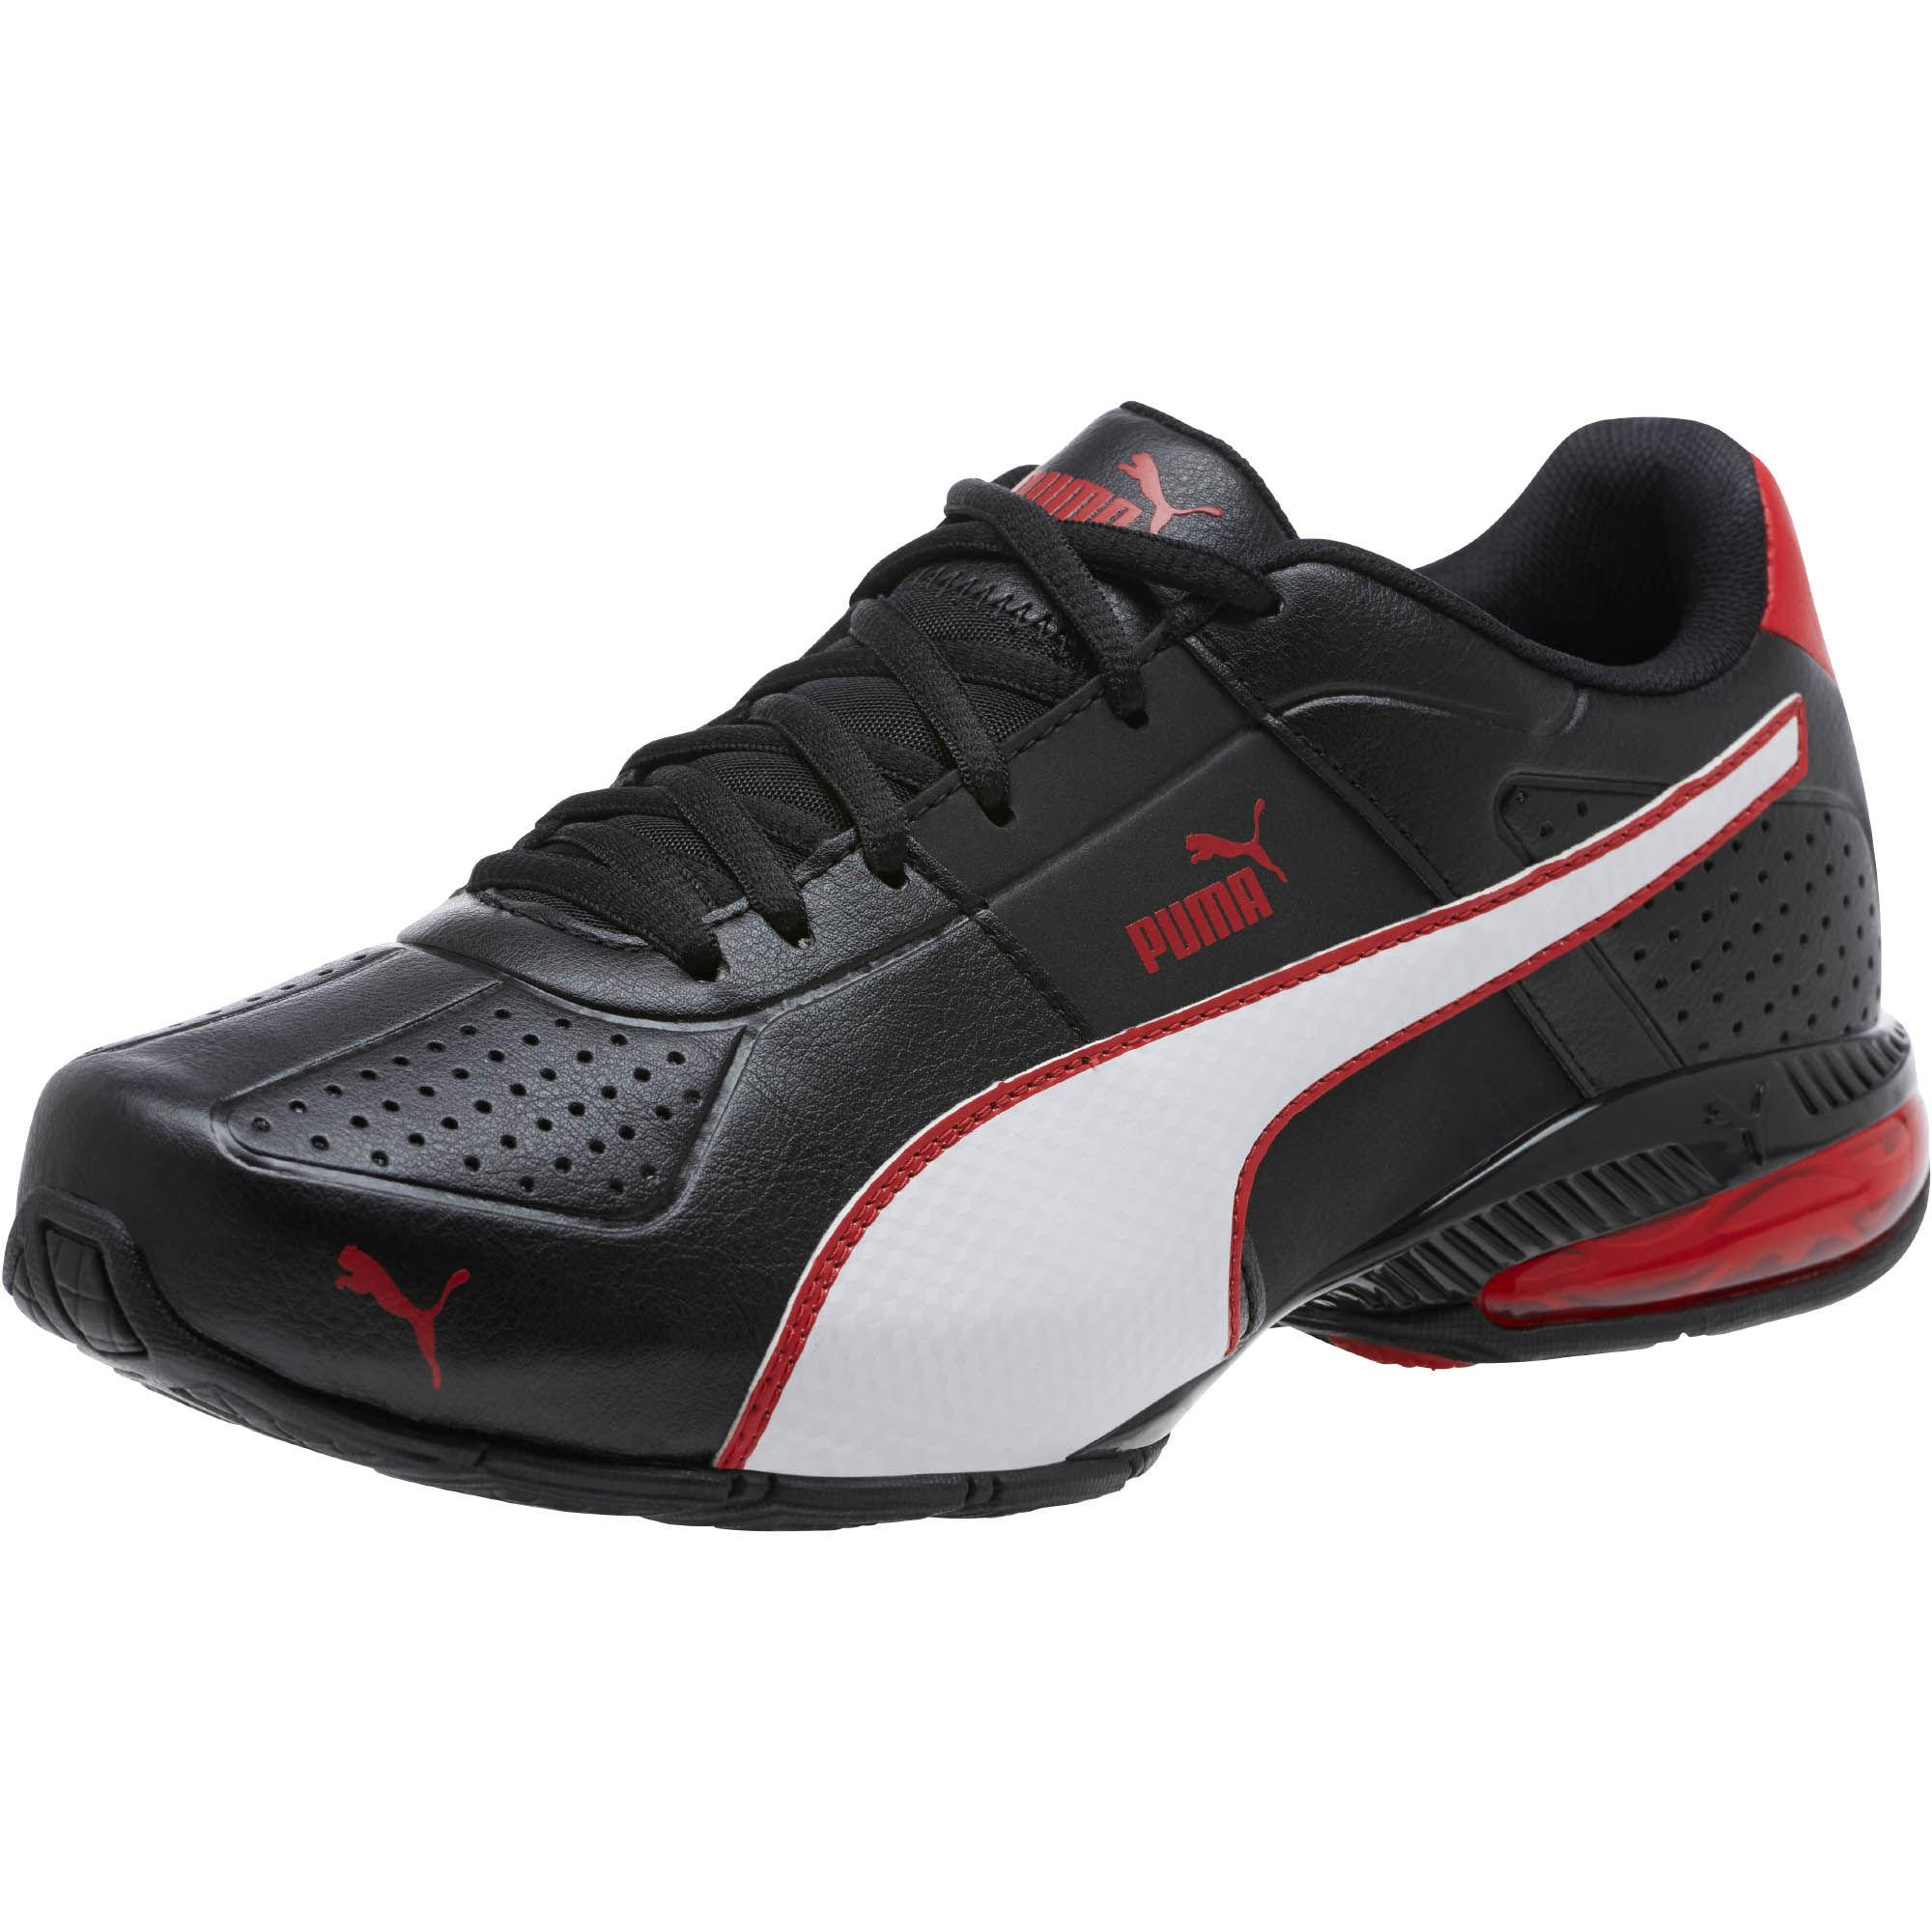 514a18d50d5 Lyst - PUMA Cell Surin 2 Fm Running Shoes in Black for Men - Save 28%